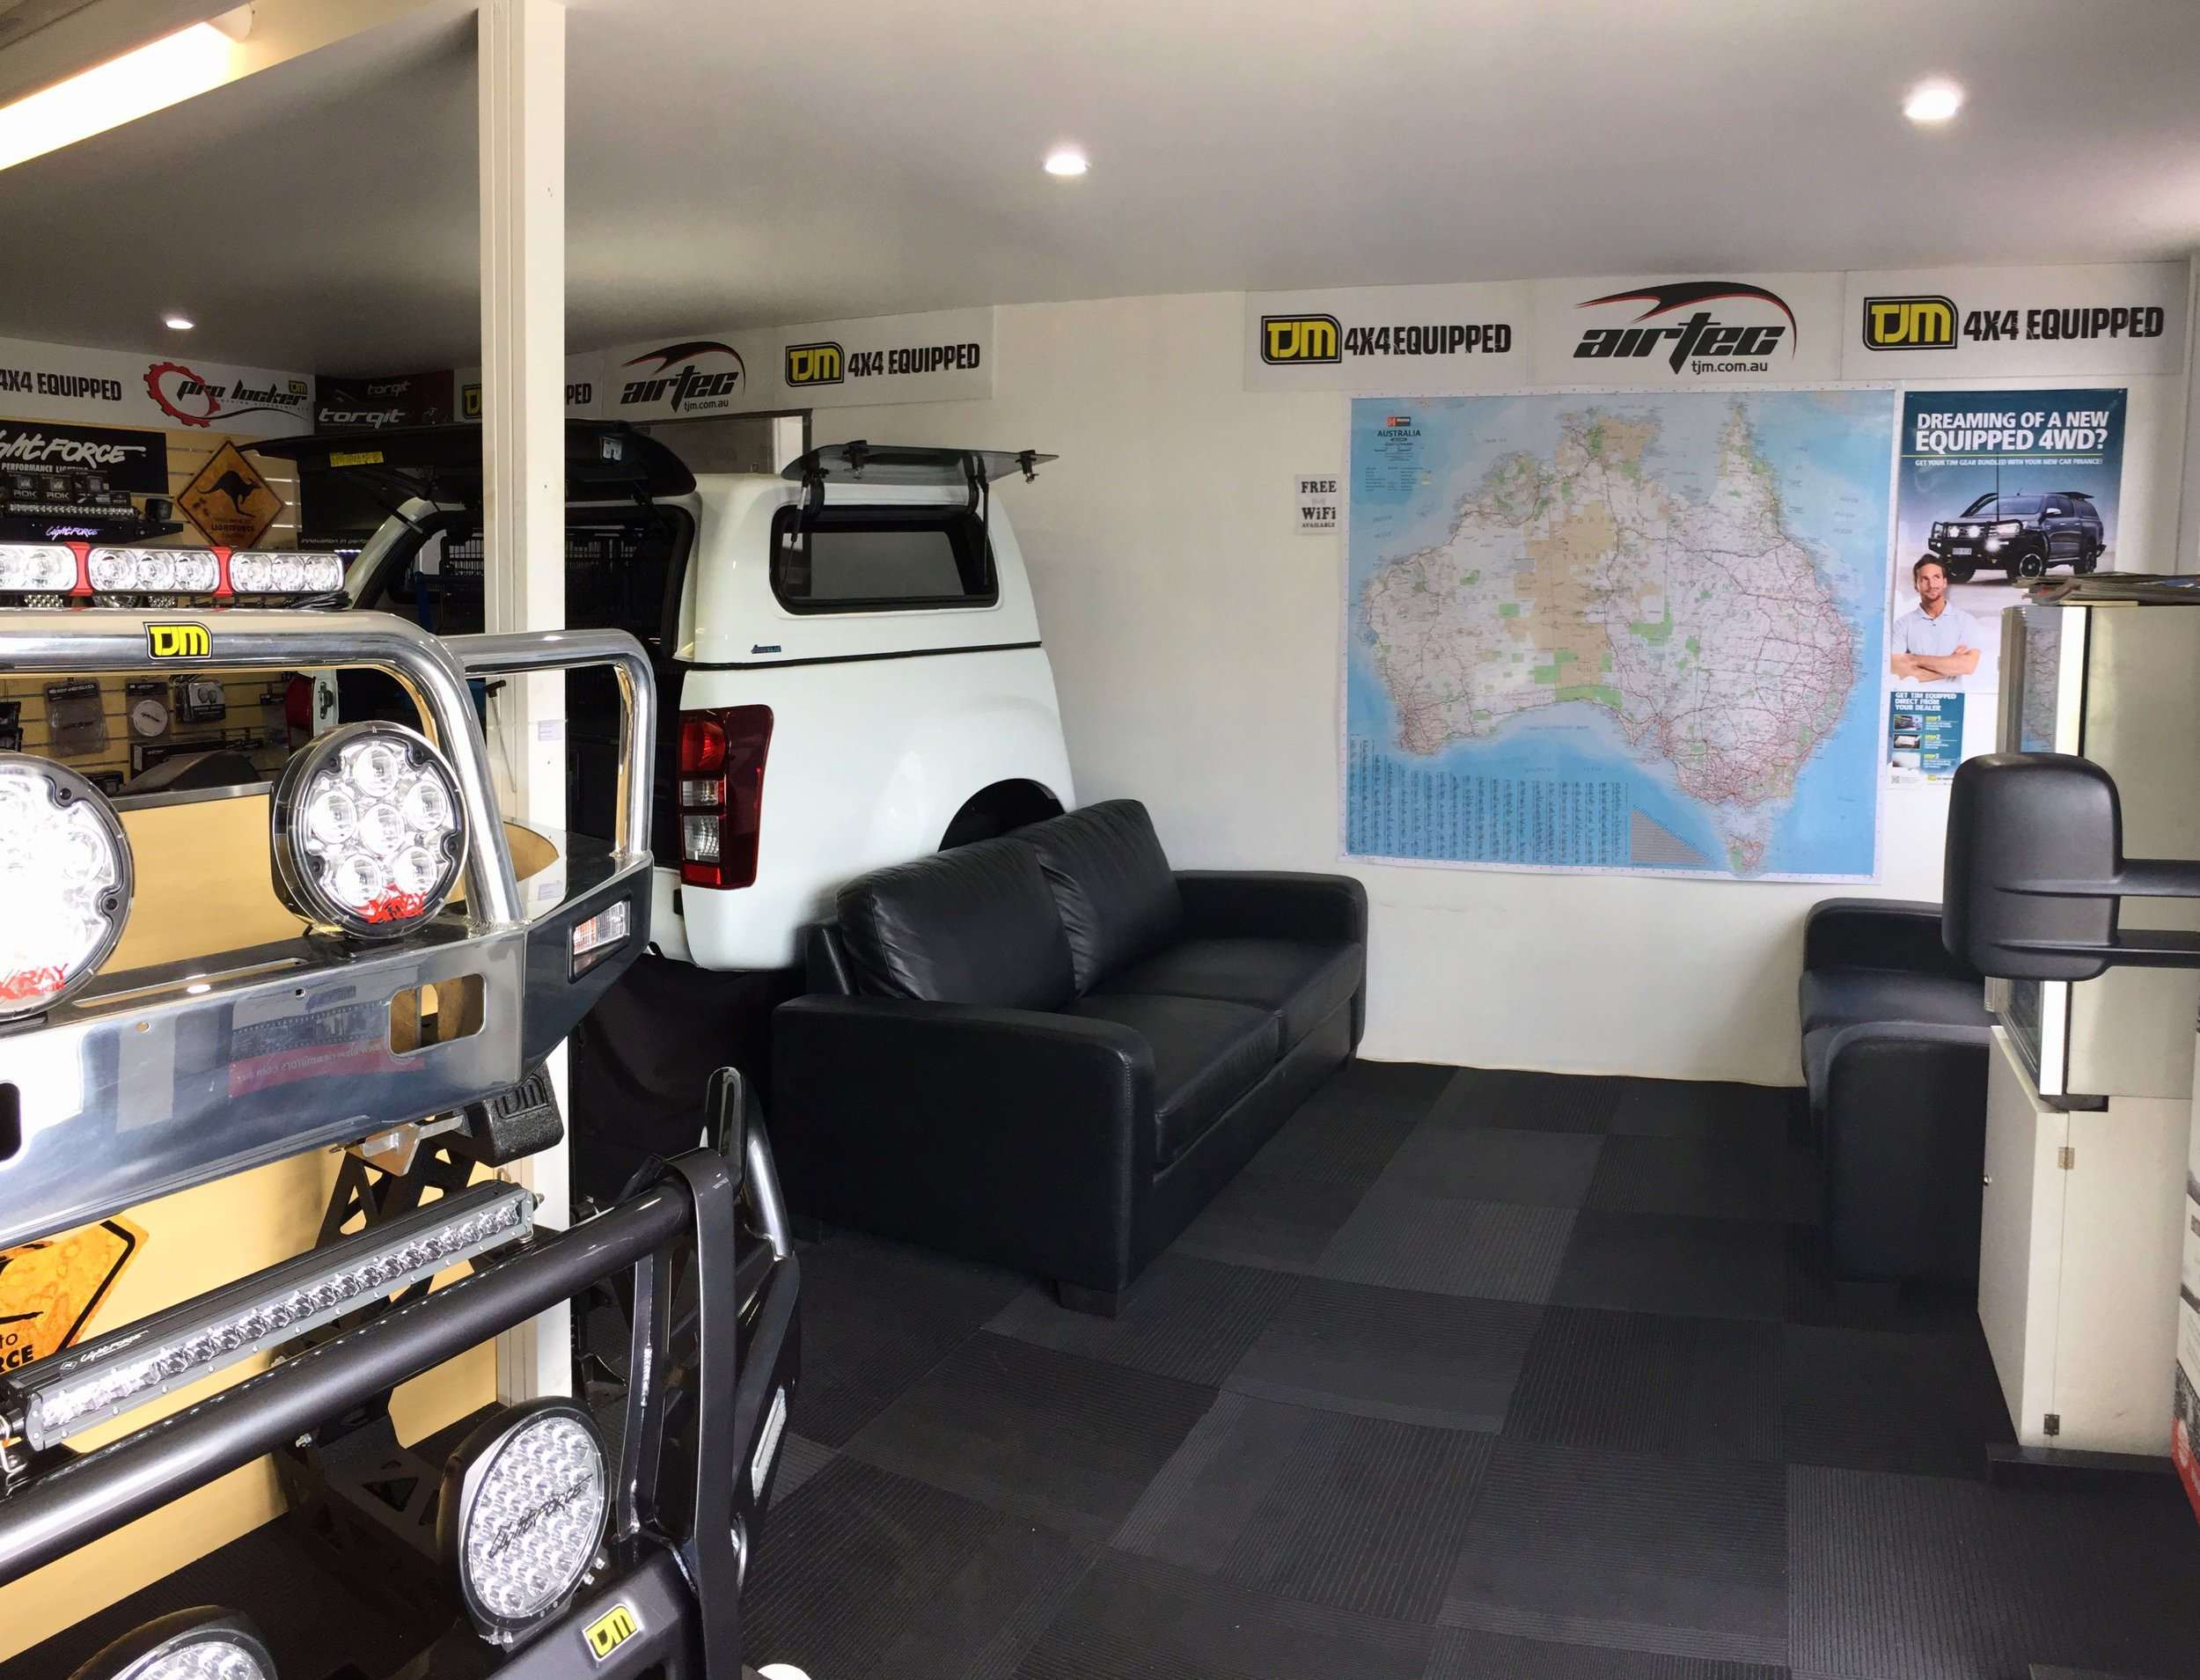 TJM TWEED HEADS AUTOMOTIVE CENTRAL